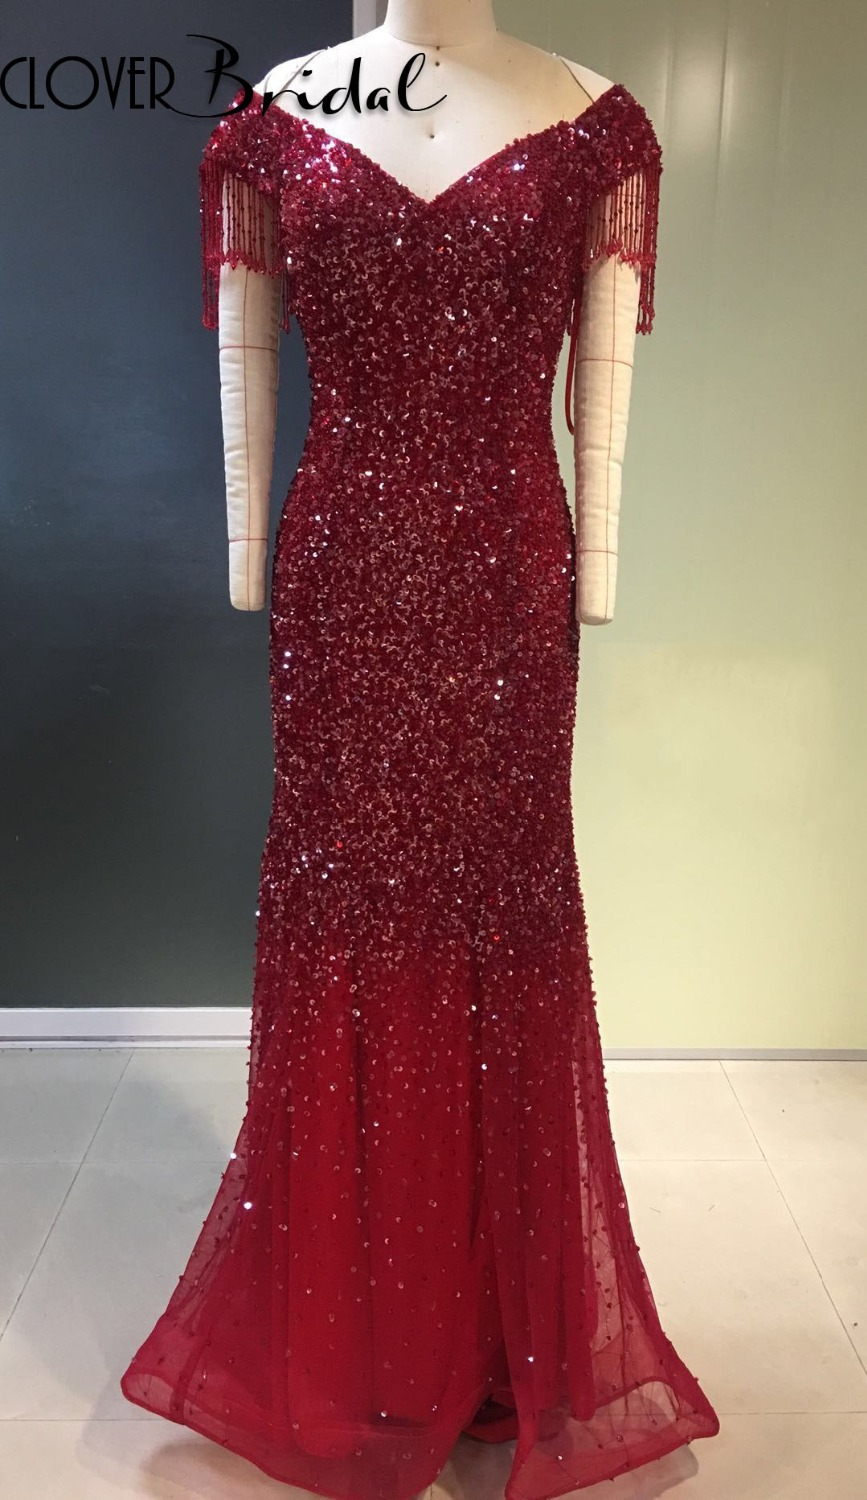 2018 CloverBridal Bling Tassels Short Sleeves Sequins Beaded Cap Sleeves V Neck Burgundy Formal Dress Floor Length Champagne